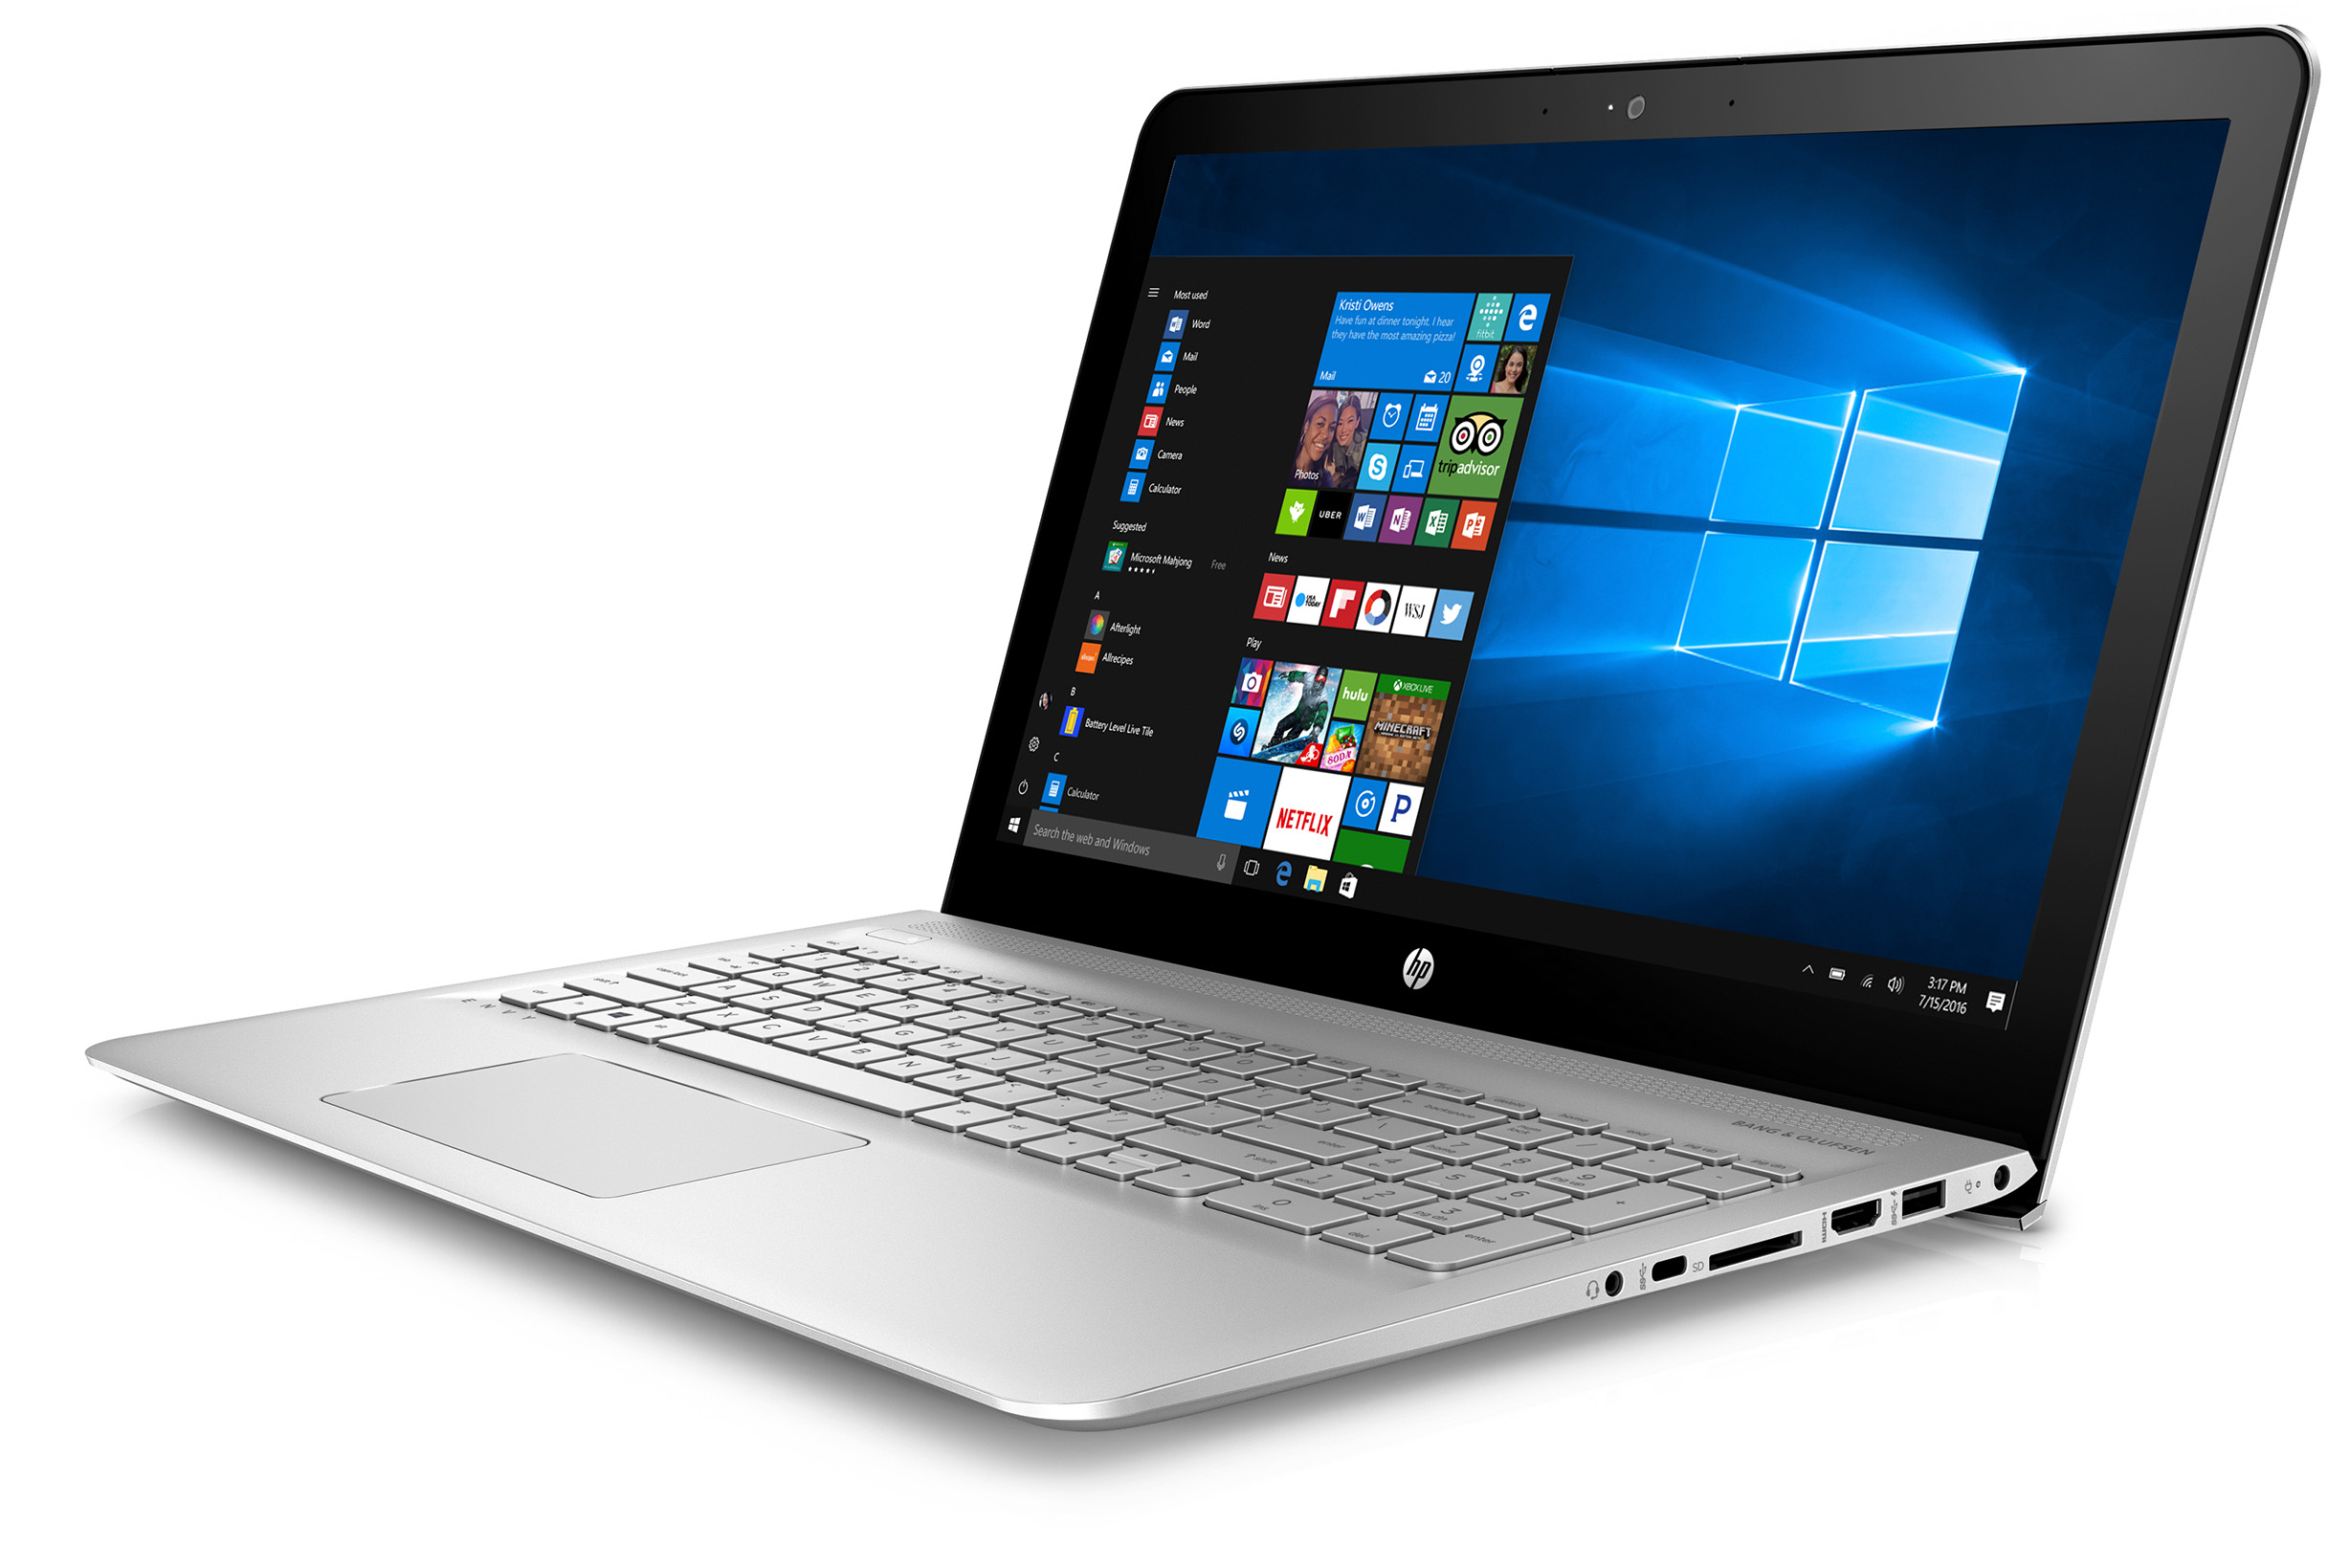 hp envy notebook 15as191ms signature edition laptop